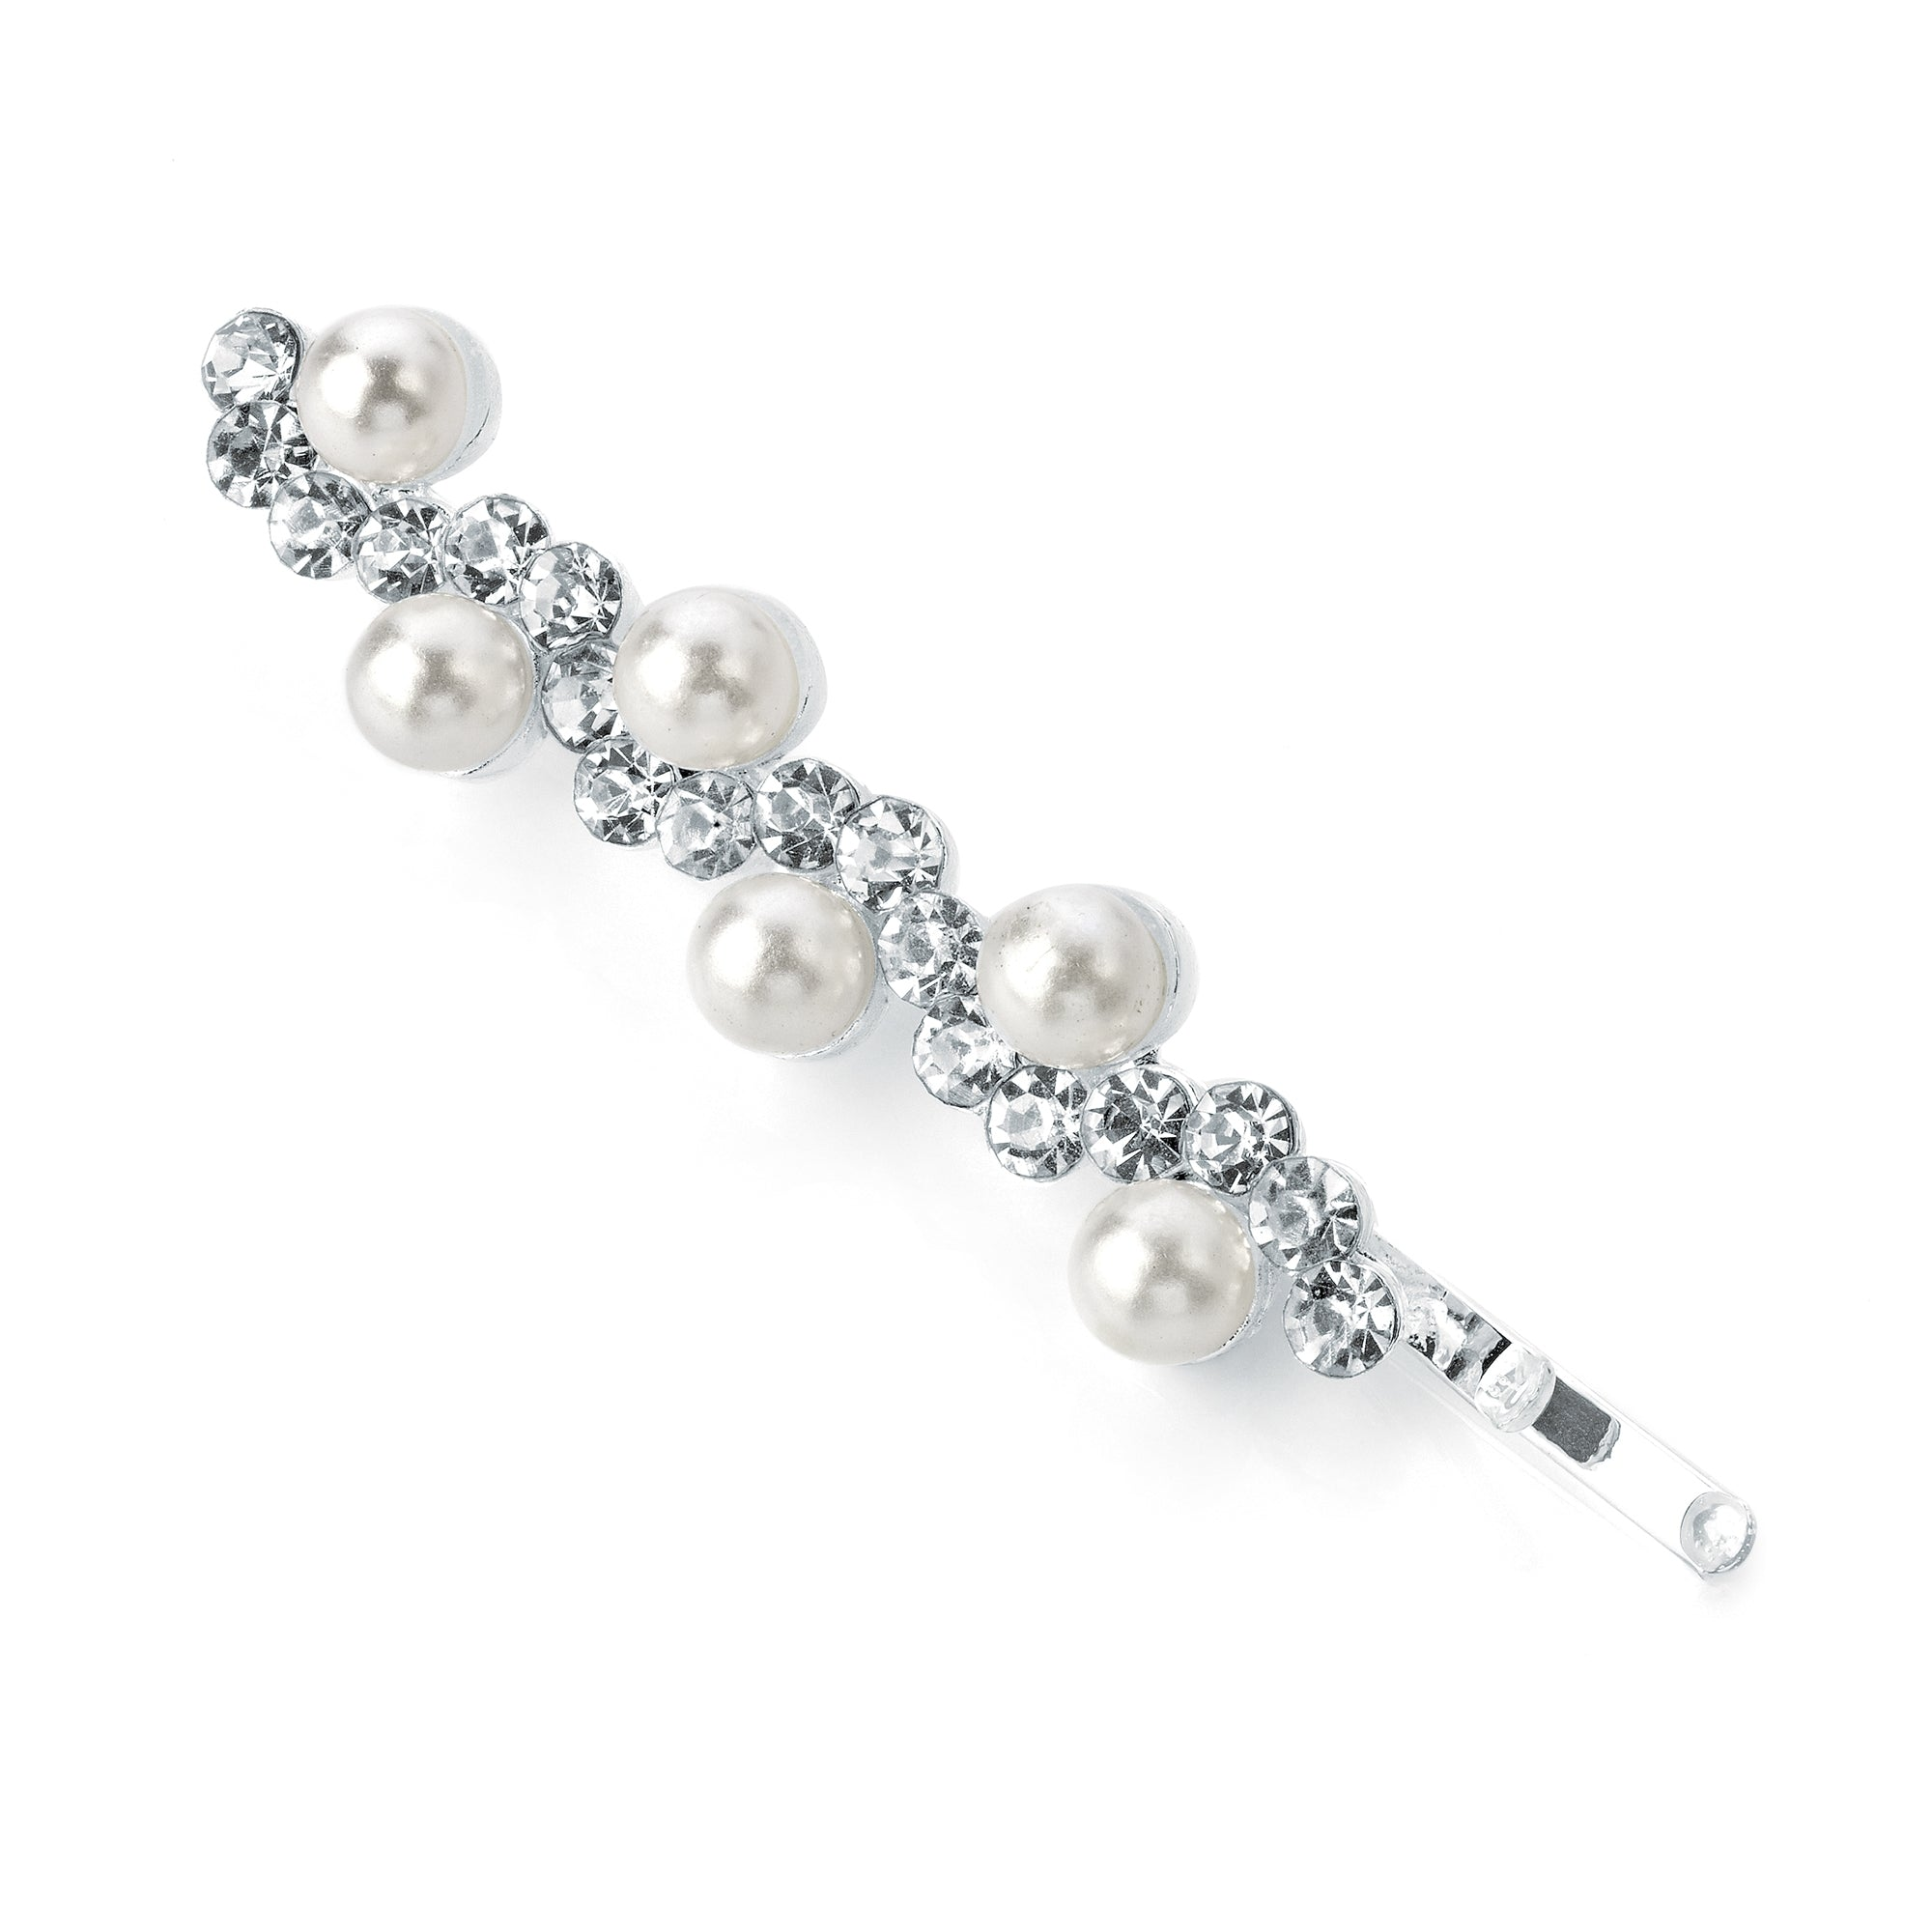 Elegant Crystal & Pearl Design Metal Hair Grip 5cm